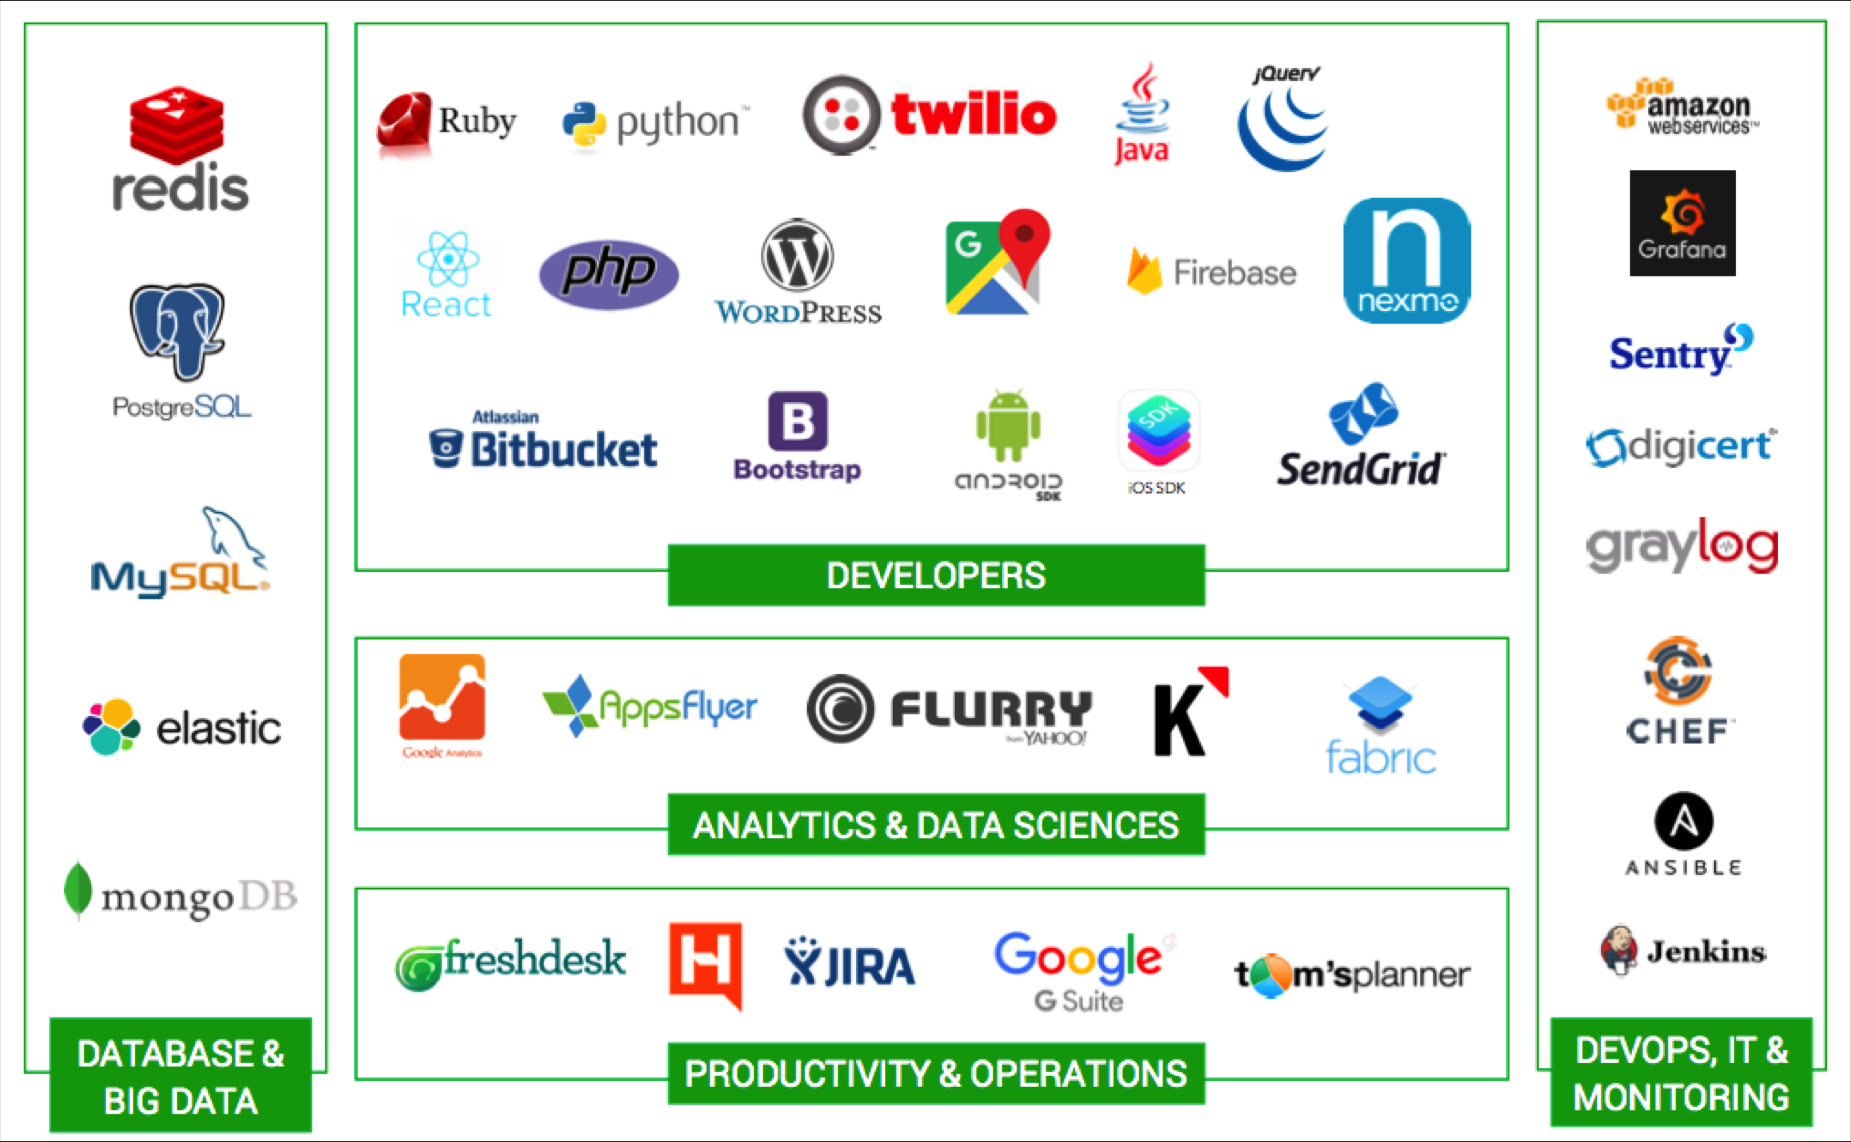 /how-a-first-time-cto-can-choose-the-right-techstack-for-their-startup-nc4m32uk feature image